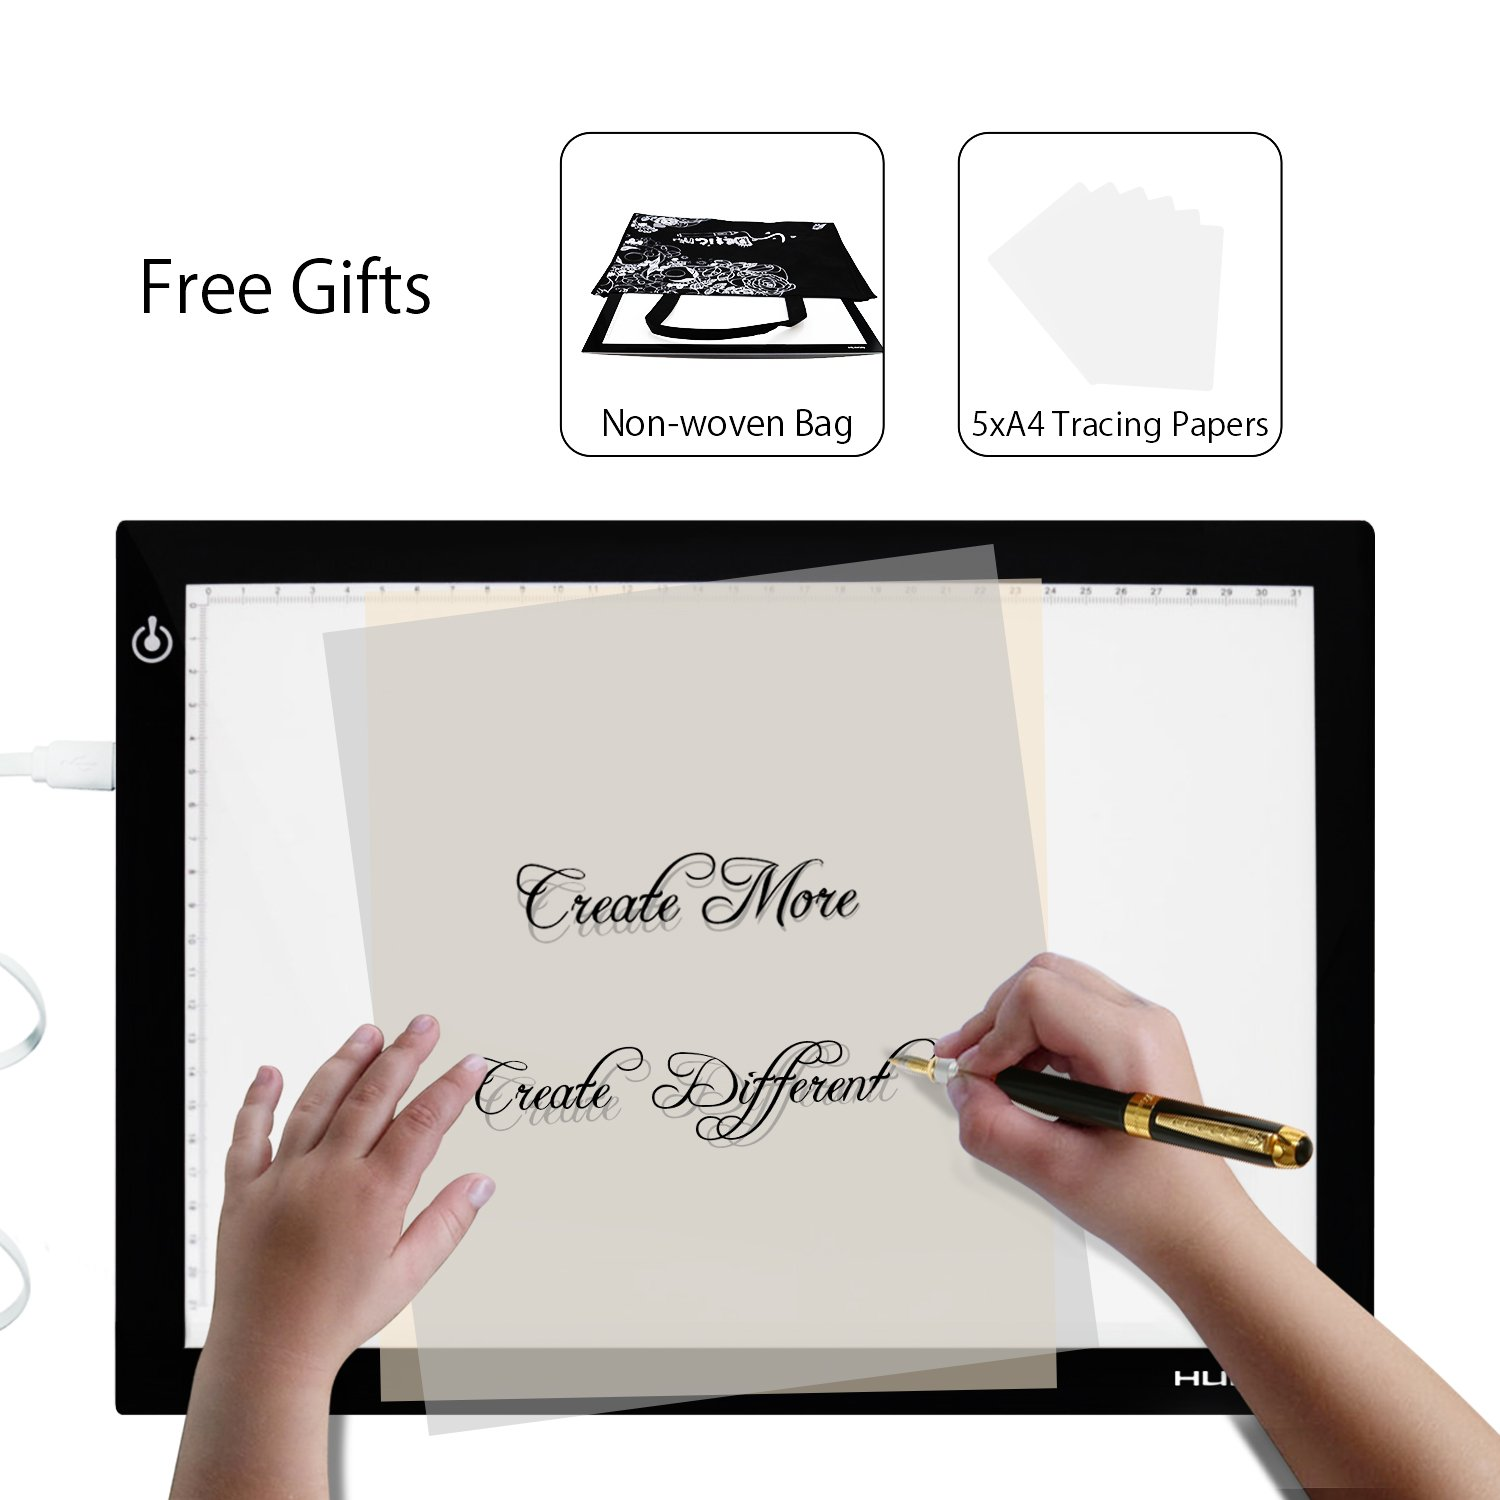 Huion L4S Light Box - 17.72 Inches USB ADJUSTABLE Illumination Light Panel only 5mm Thin Light Table with 5 A4 Tracing Papers and 1 Non-woven Bag L14.17'' x W10.63'' x H0.2''